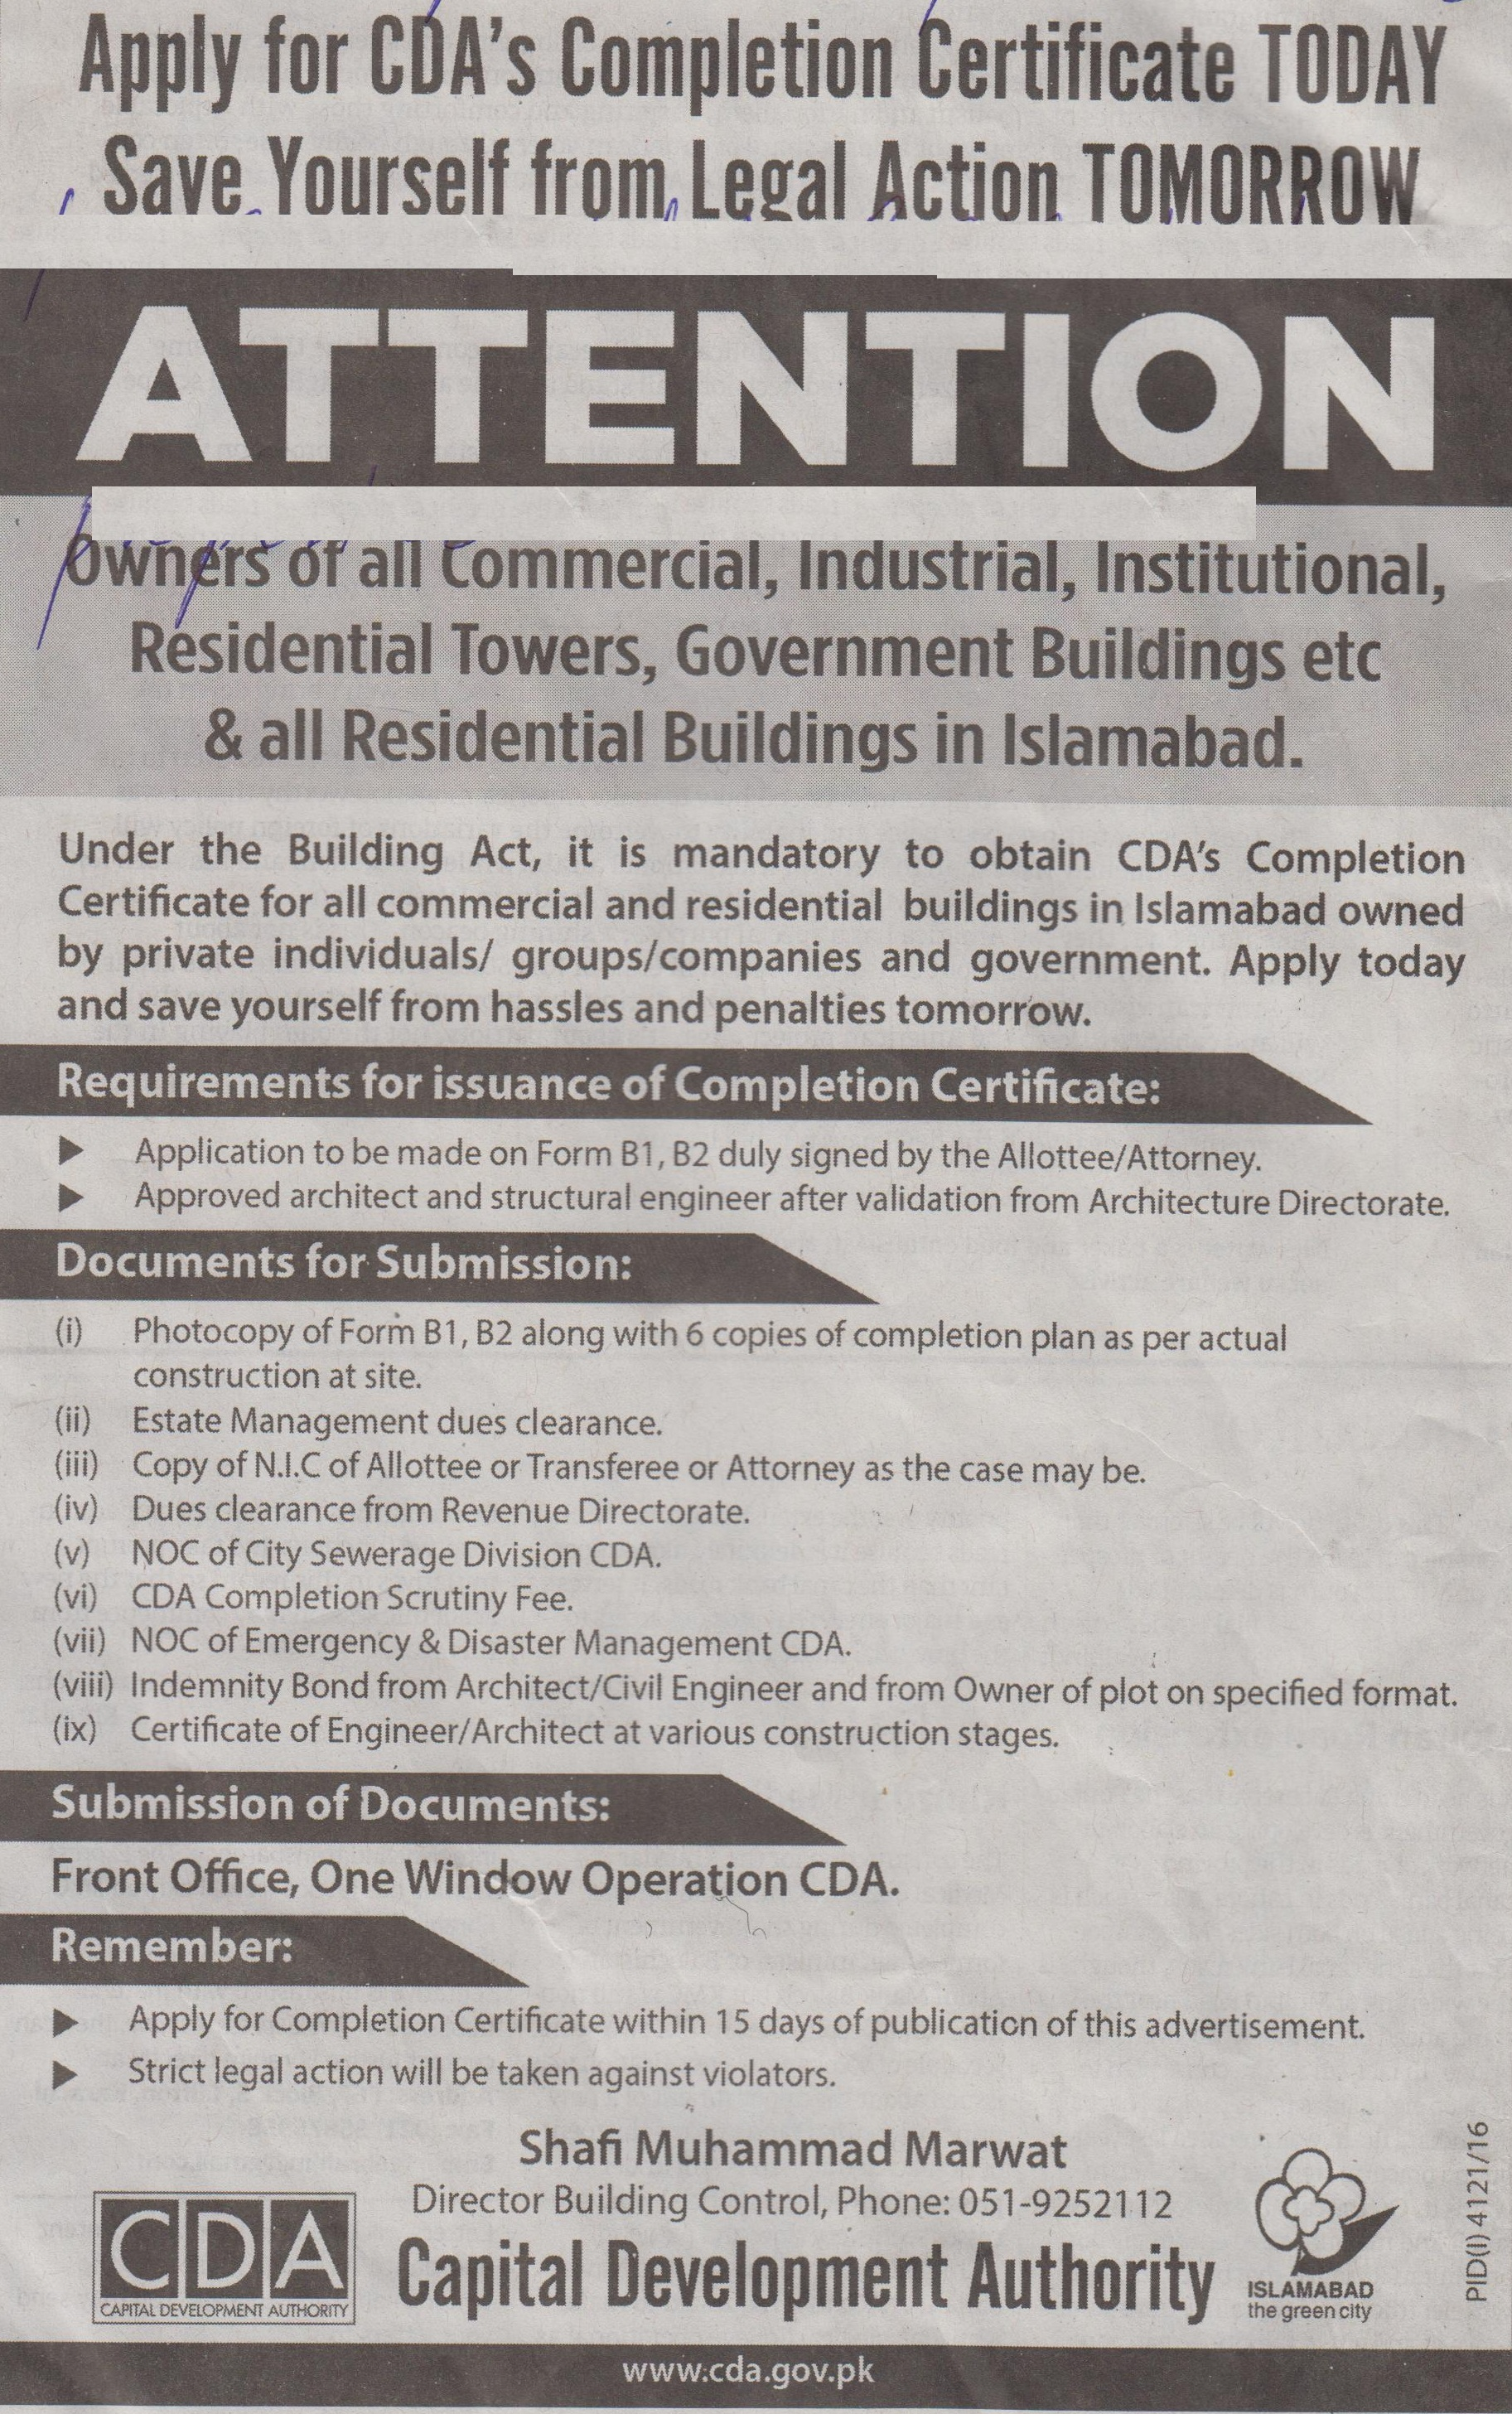 Cda Completion Certificate Process For Commercial Residential